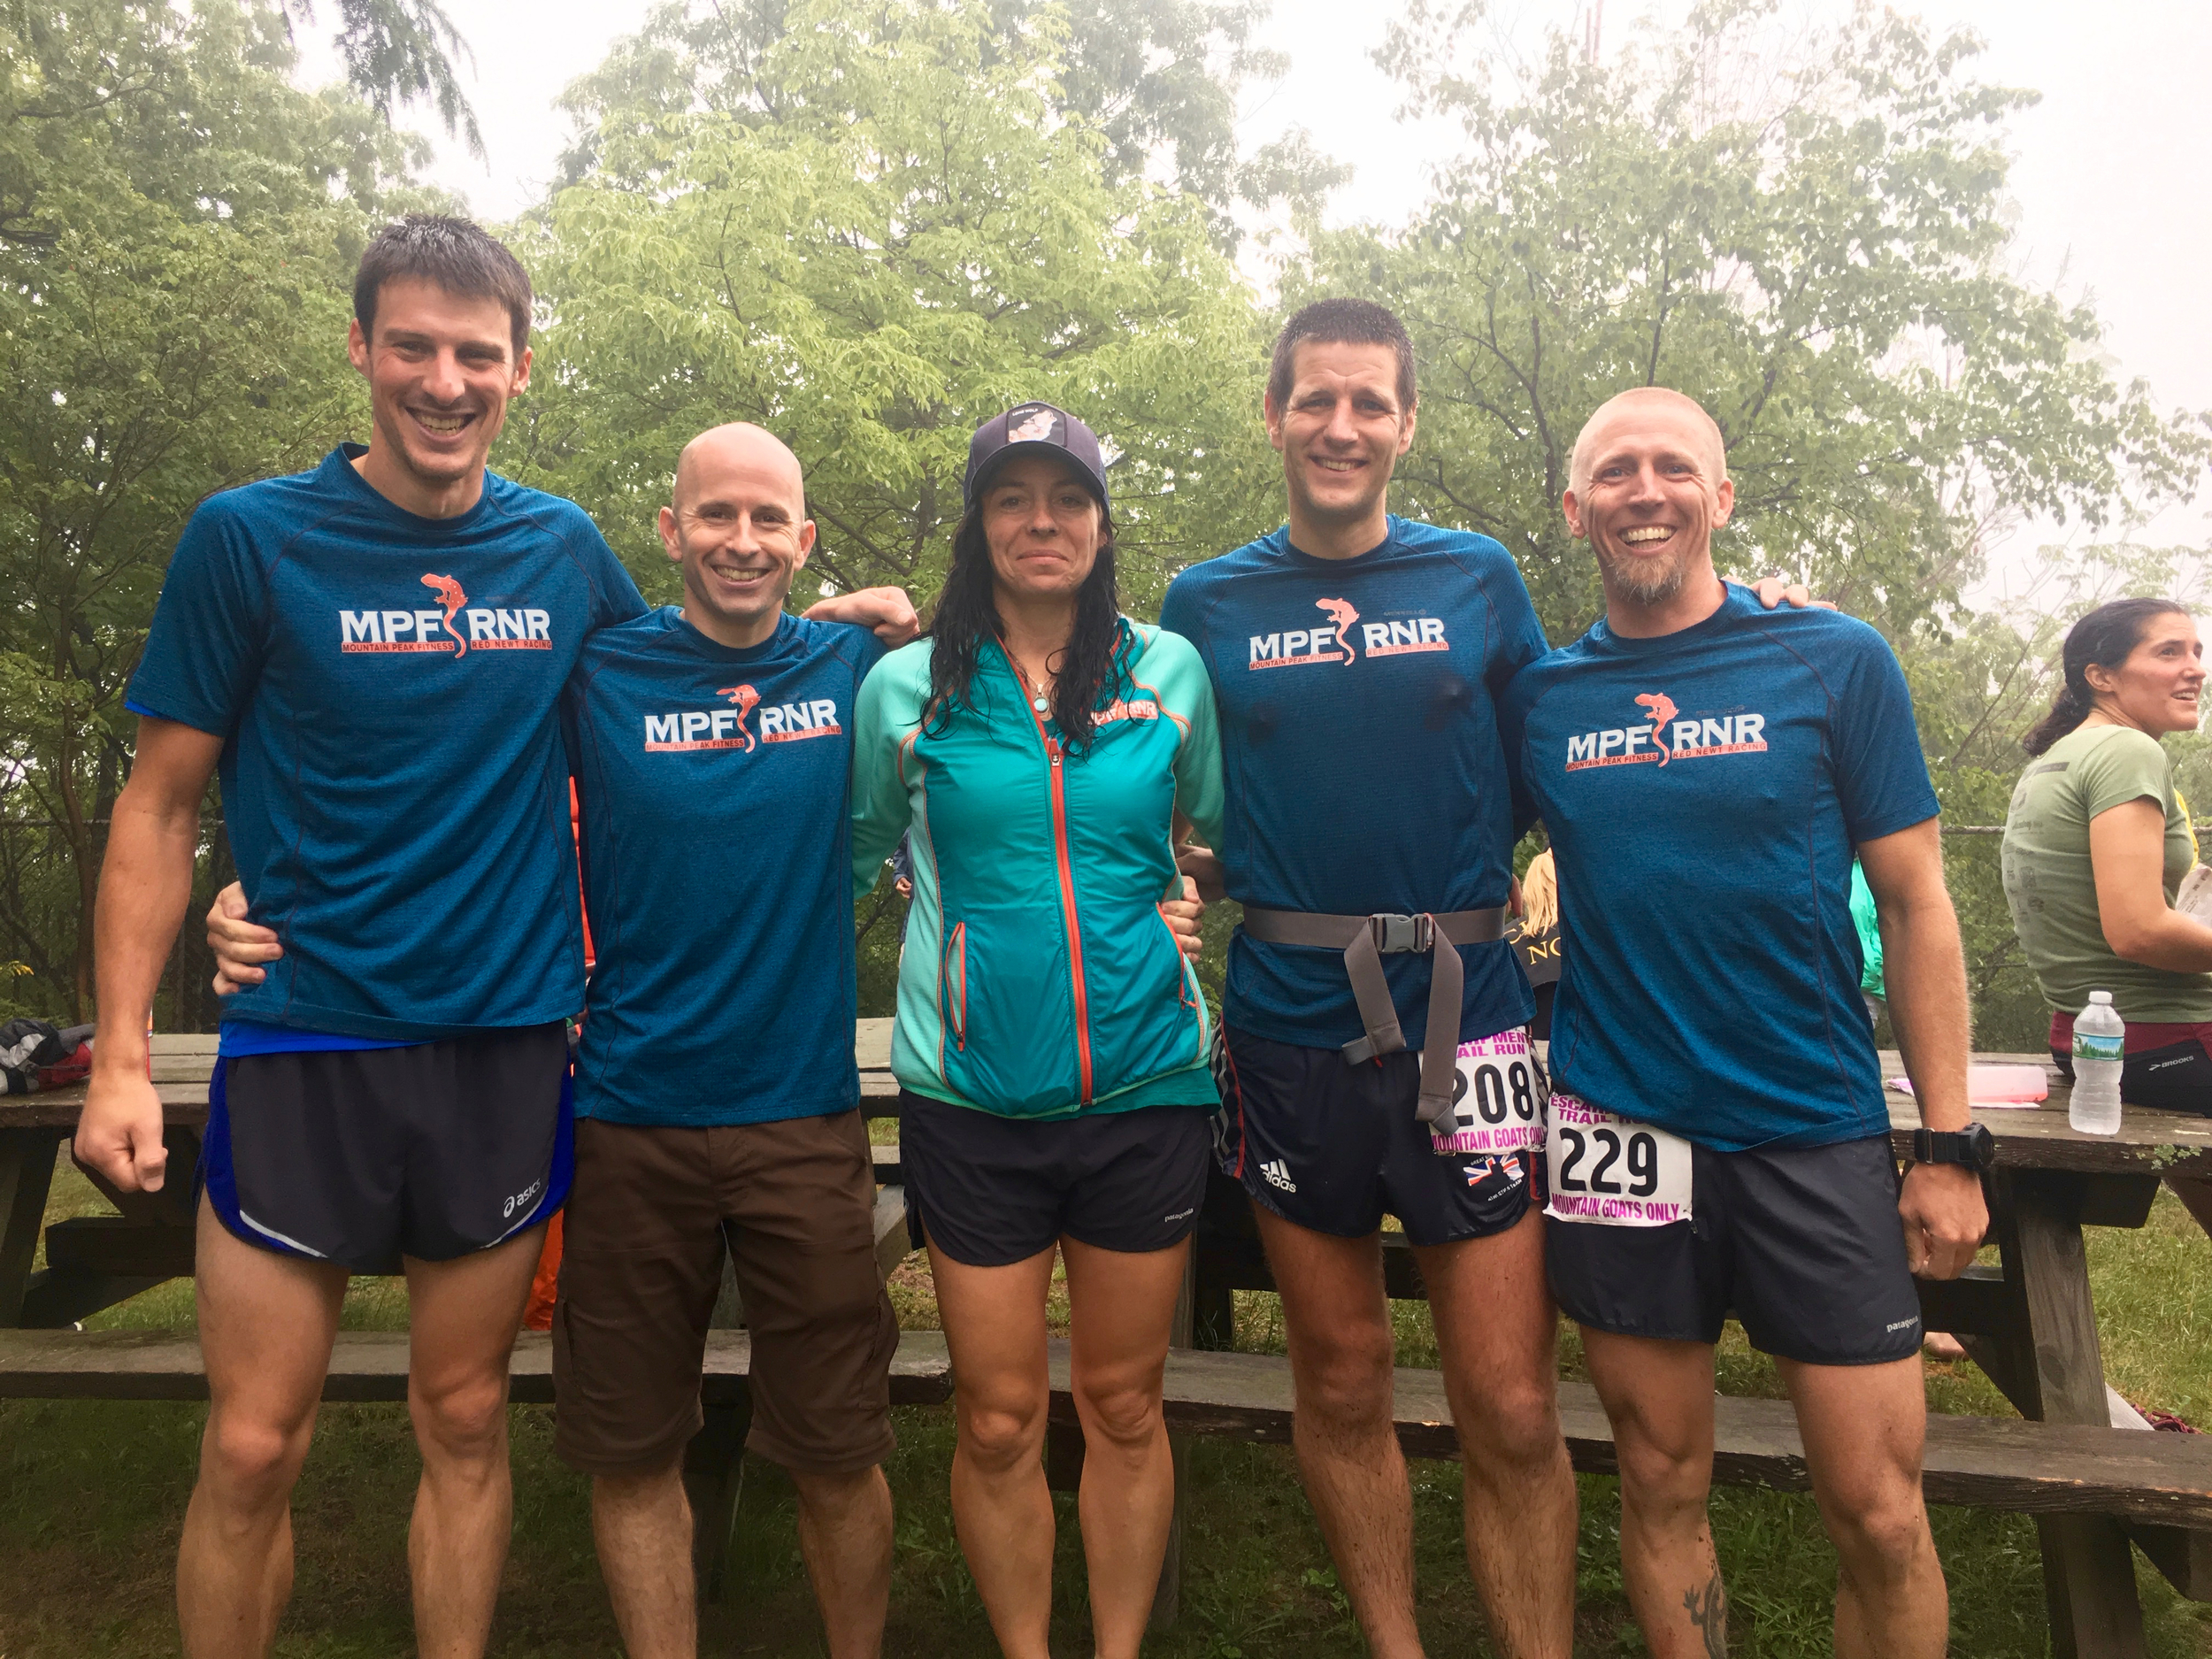 Jan Wellford, Ben Nephew, Zsuzsanna Carlson, Iain Ridgway and Mike Siudy from the MPF RNR Trail Running Team!